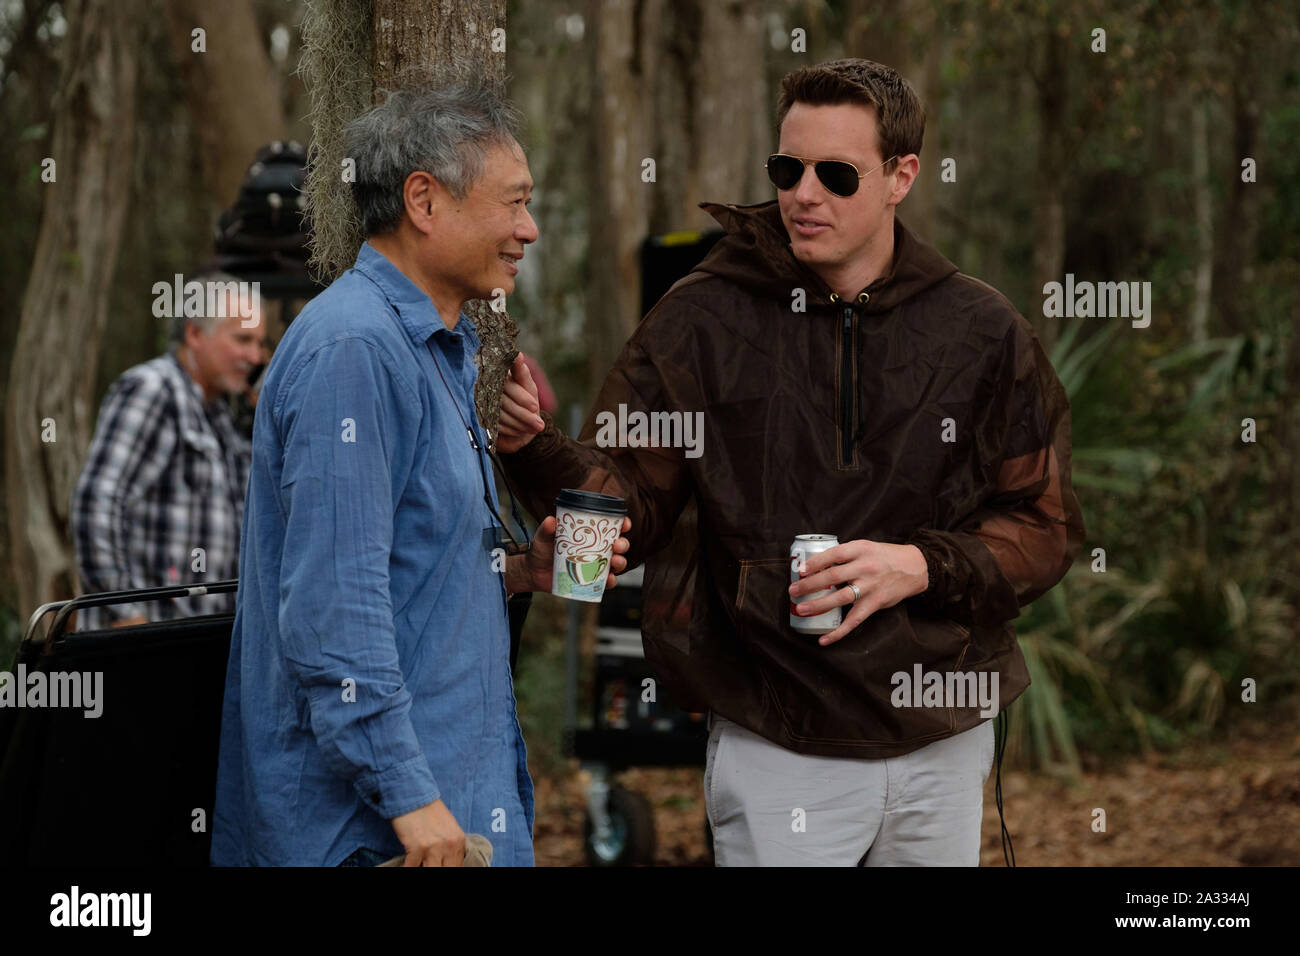 Director Ang Lee and David Ellison on the set of Gemini Man from Paramount Pictures, Skydance and Jerry Bruckheimer Films (2019). Photo Credit:  Ben Rothstein/Paramount Pictures/The Hollywood Archive Stock Photo